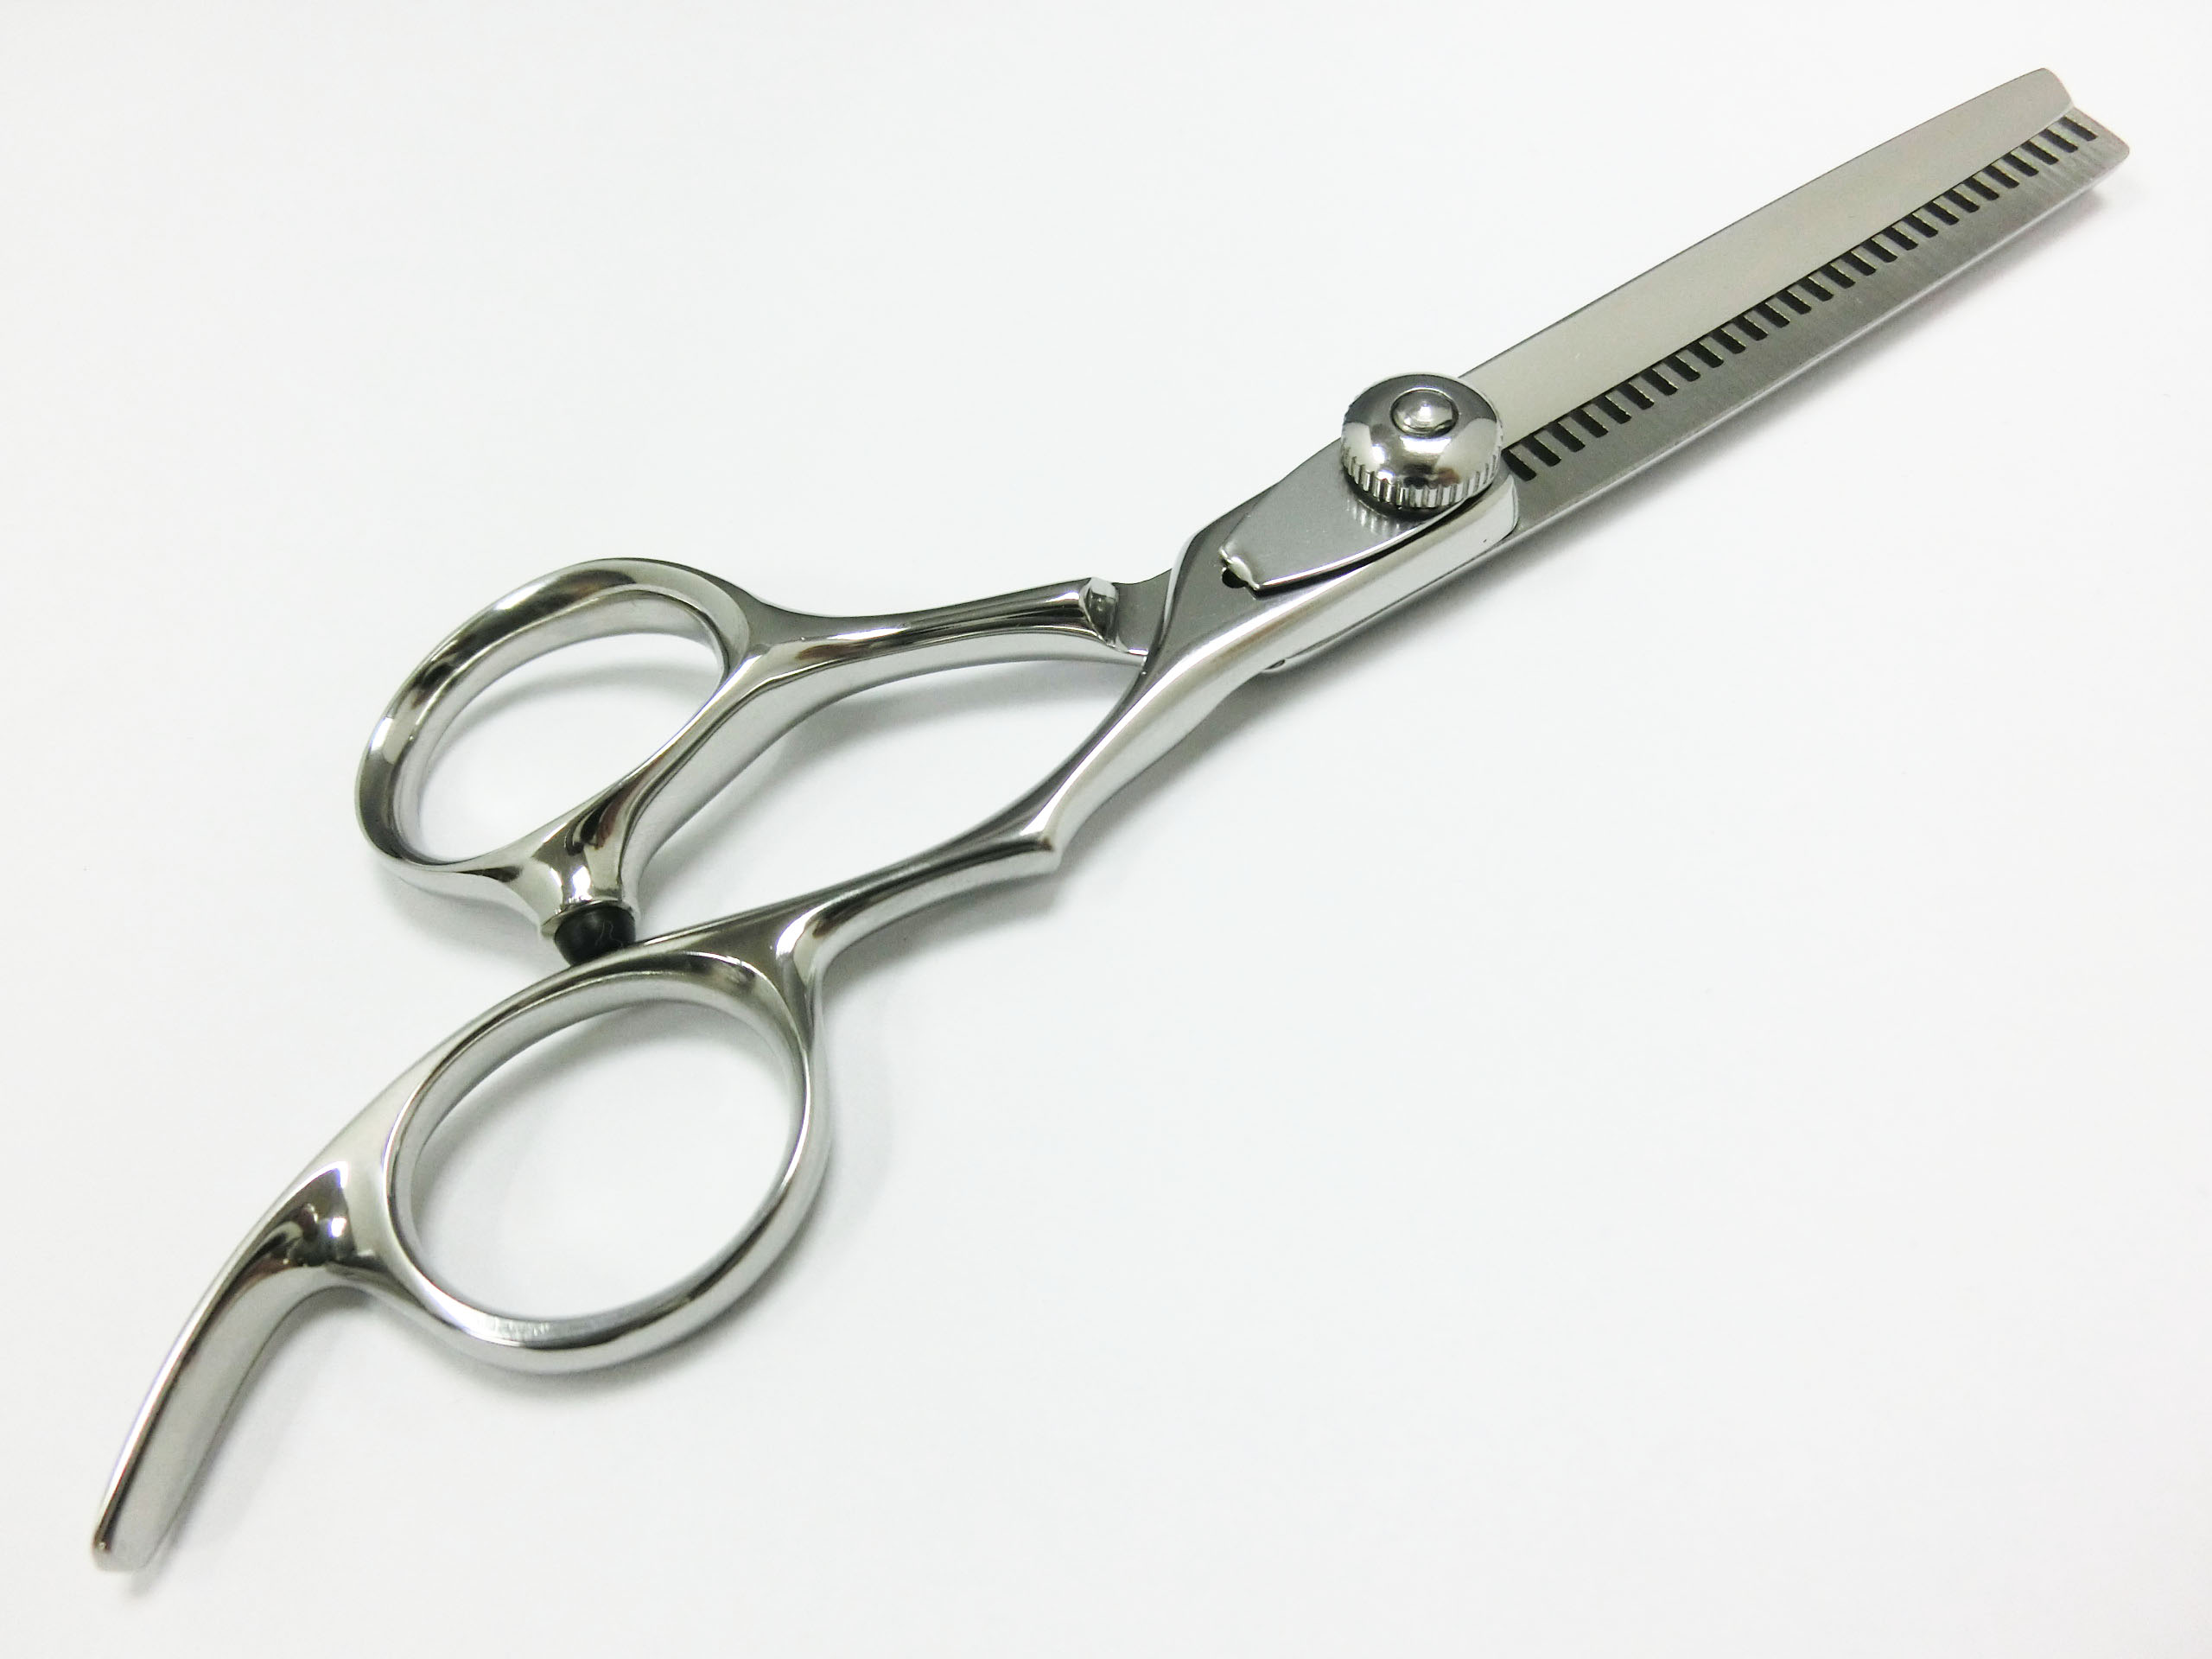 Opposite Hair Thinning Scissors (PLF-O55BU)